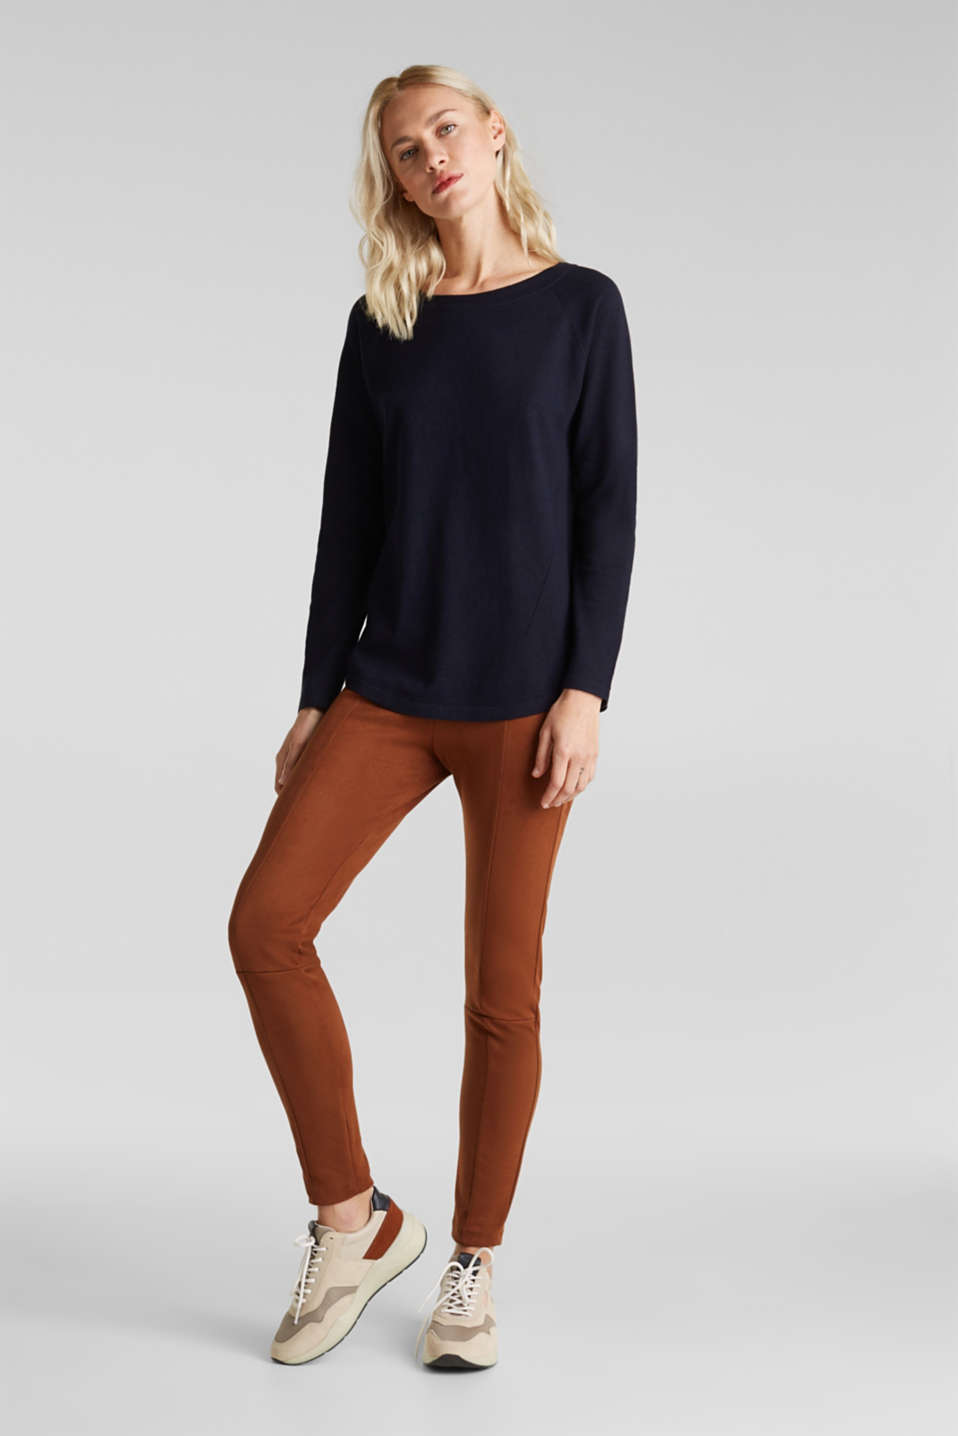 With linen: Jumper with open-work patterned details, NAVY, detail image number 1